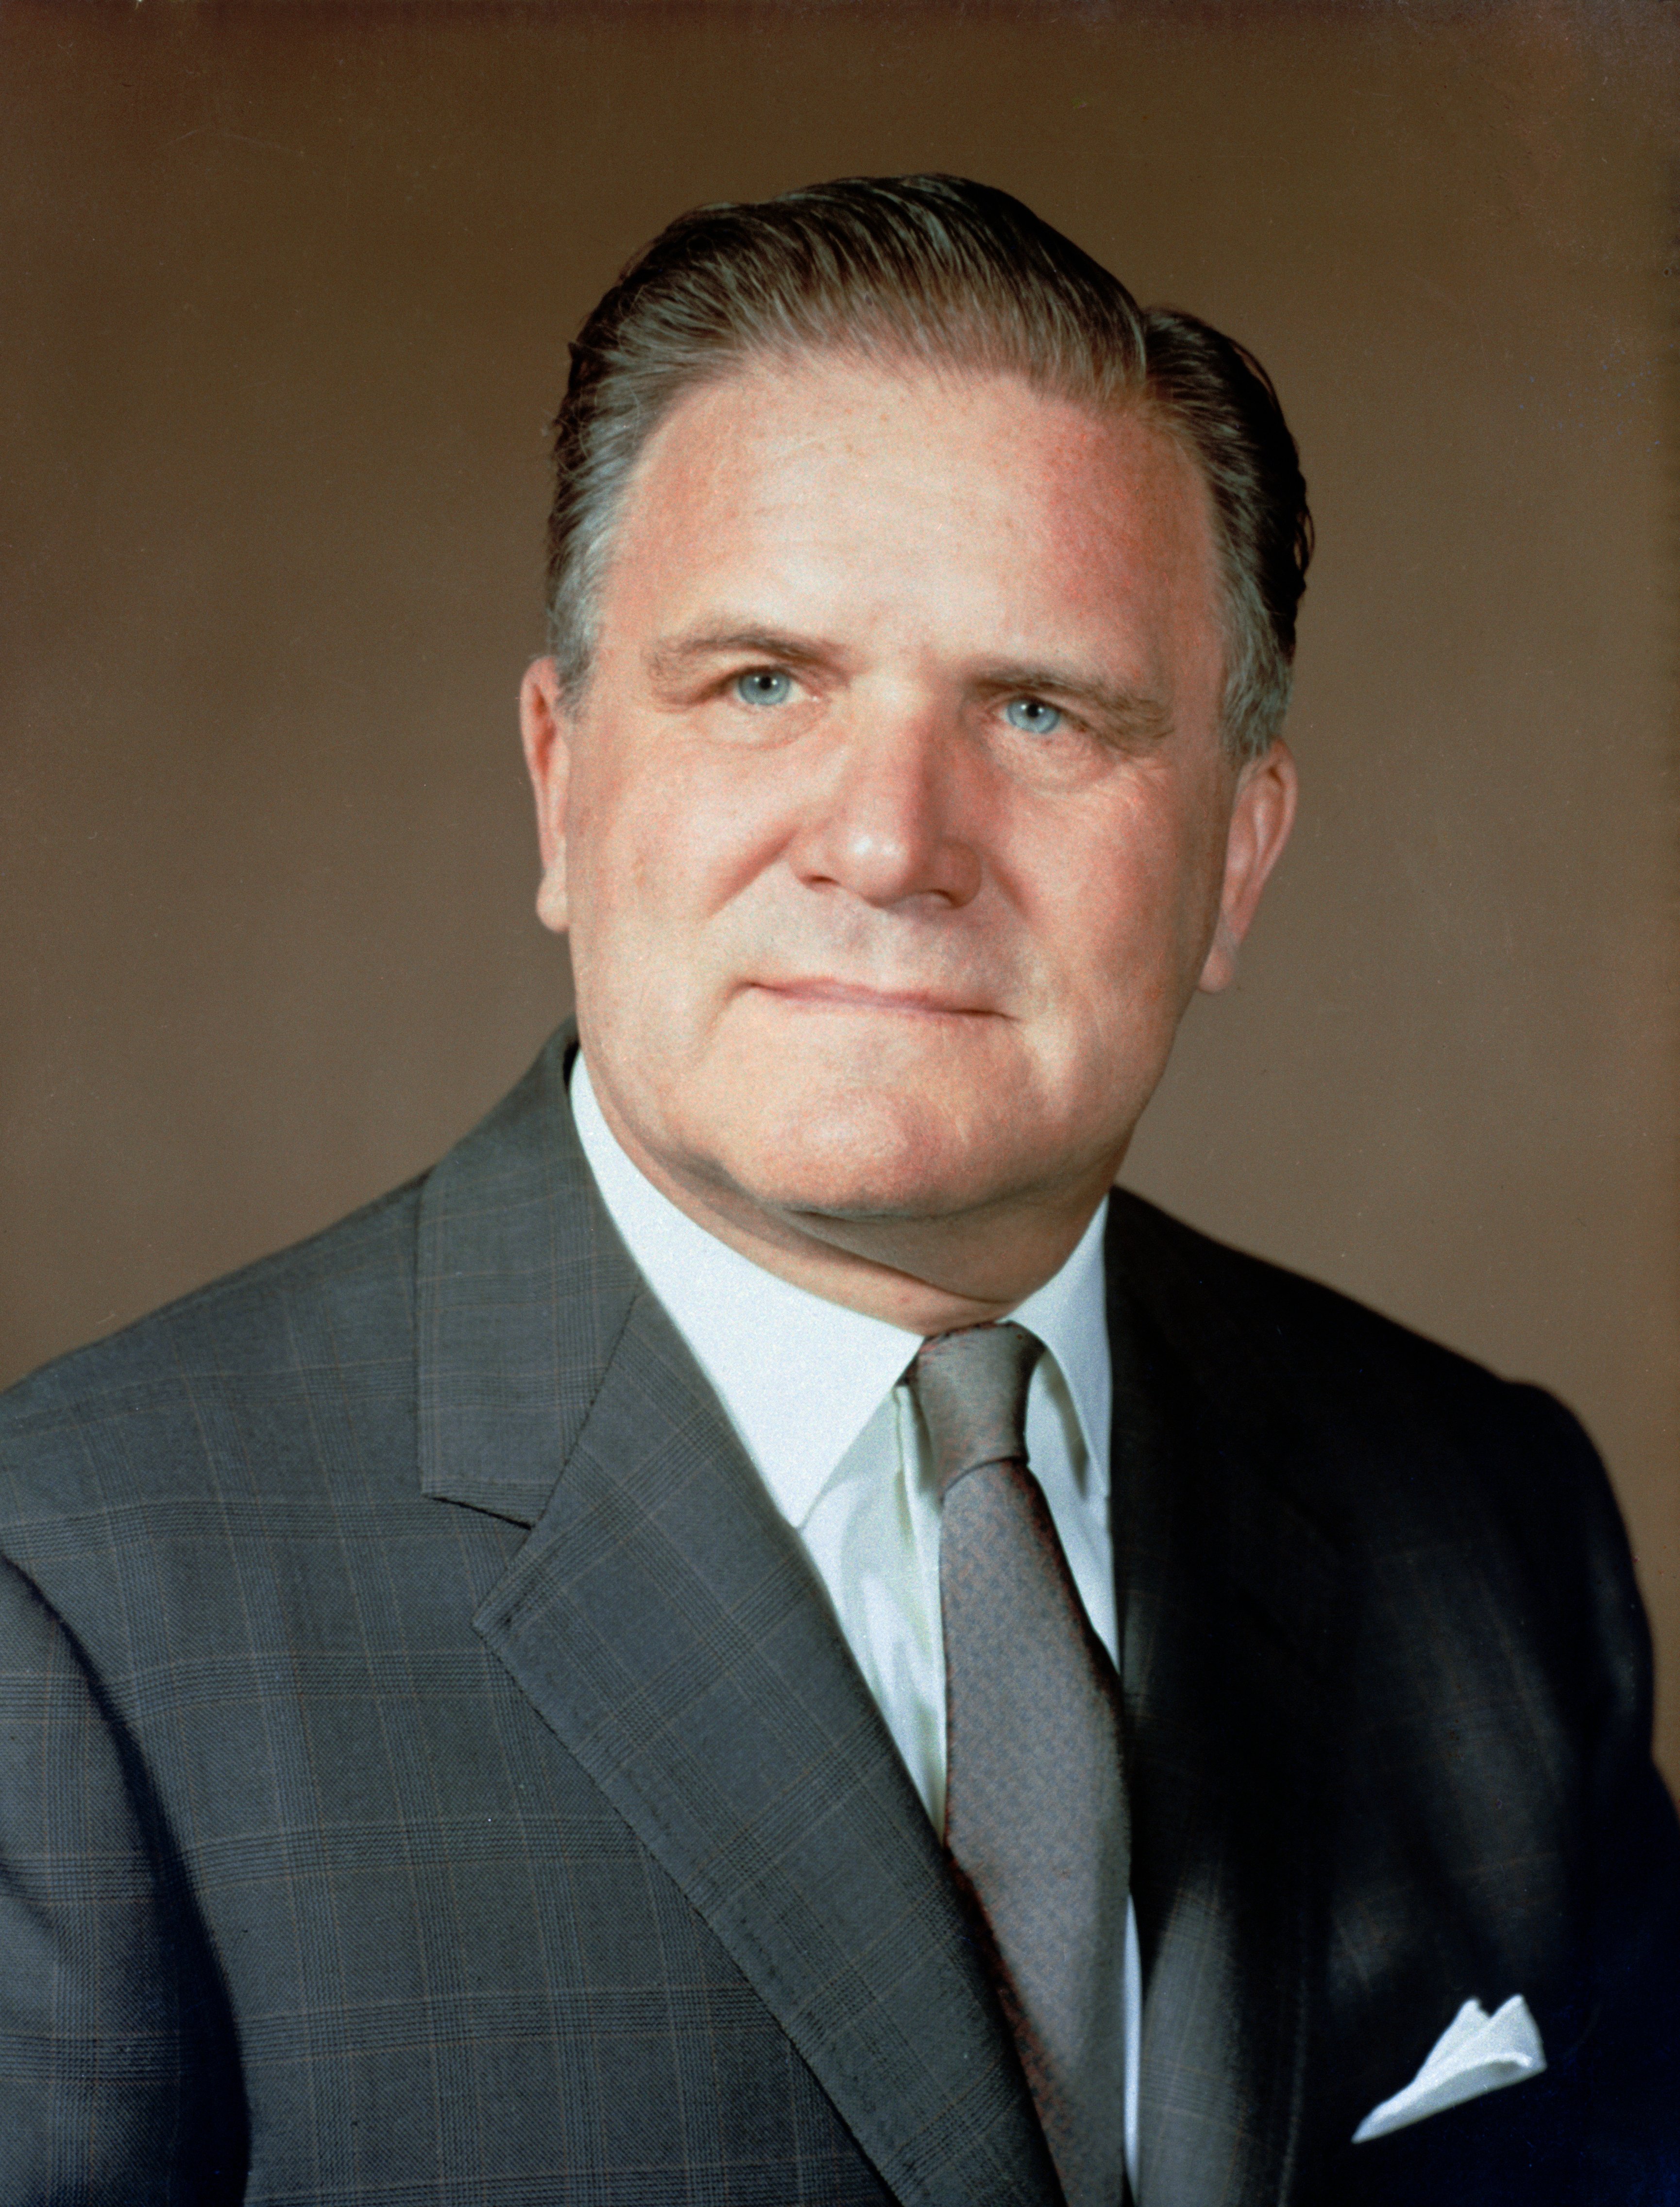 Image of James E. Webb